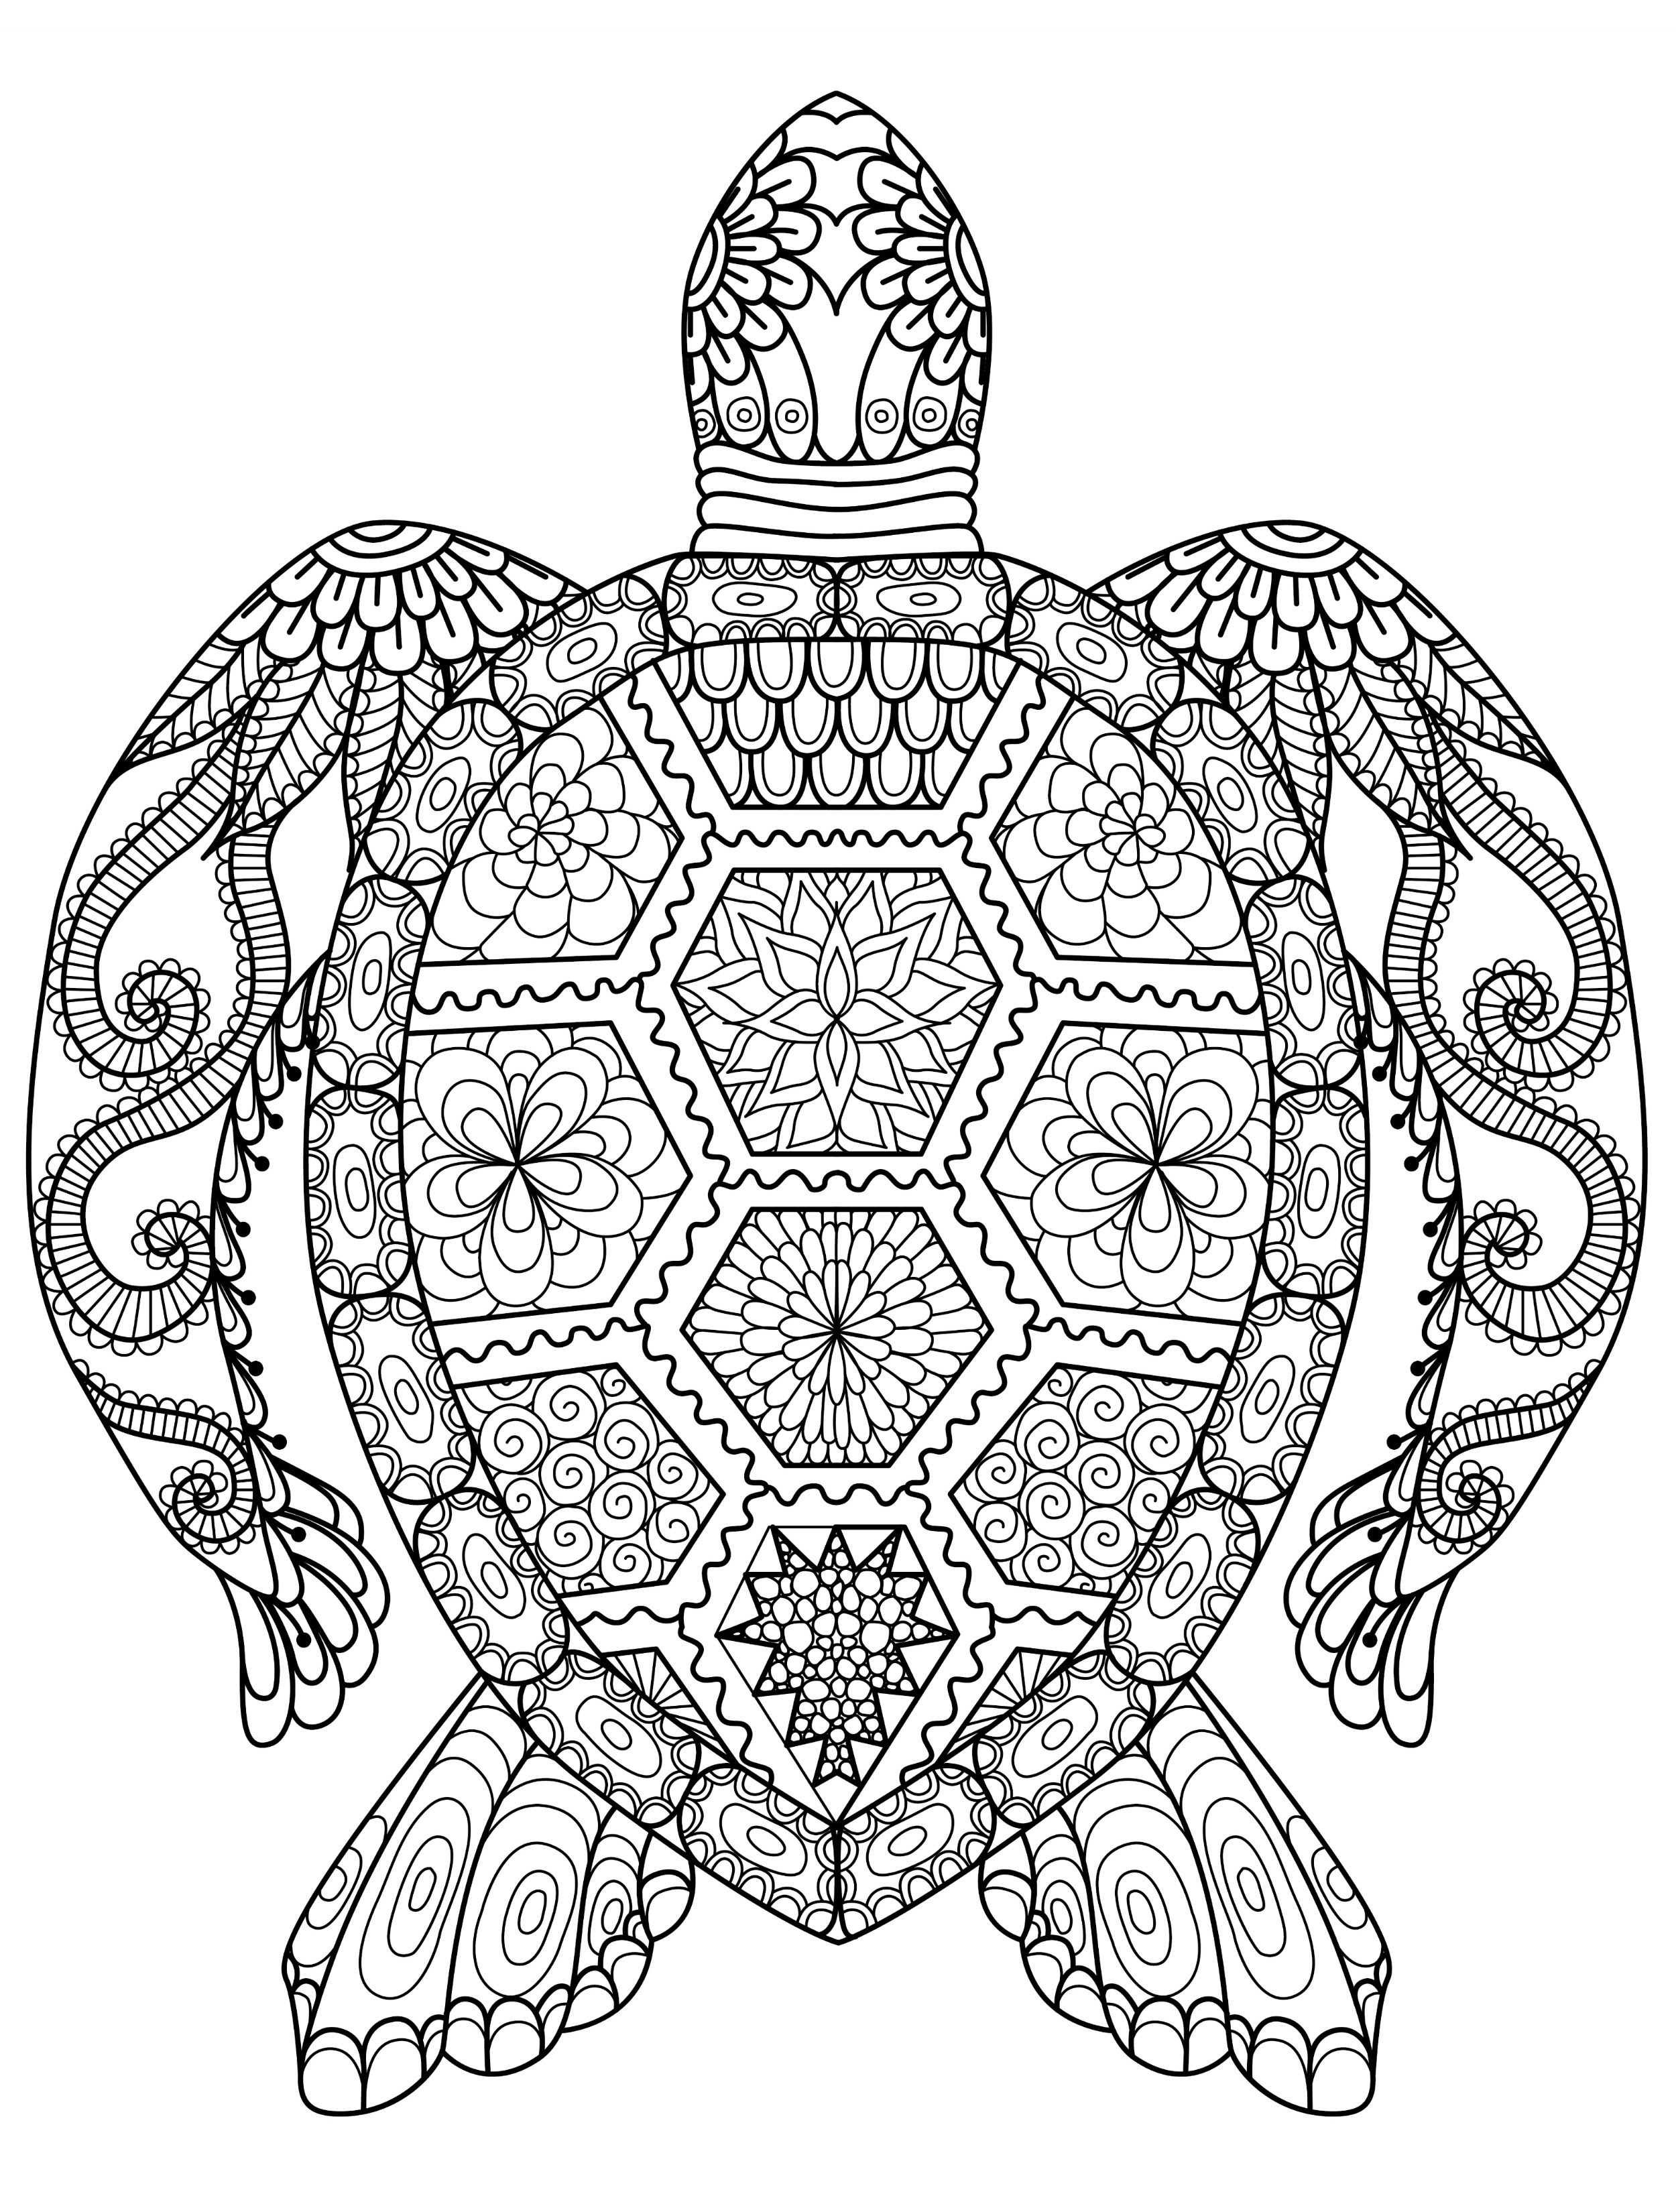 coloring images of animals animal coloring pages for adults best coloring pages for of images animals coloring